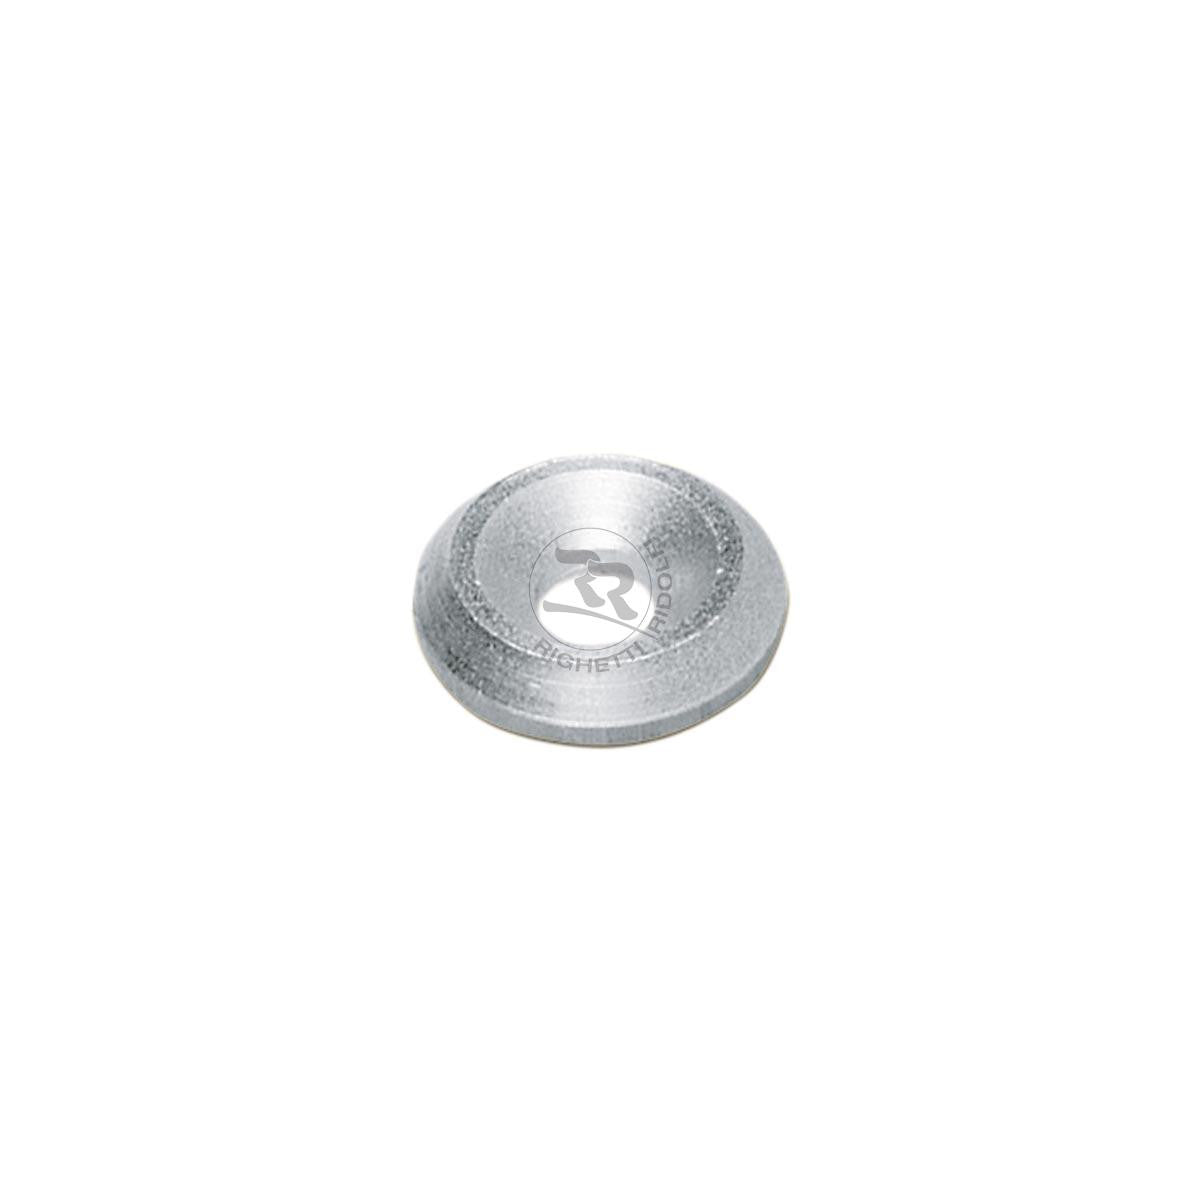 Aluminium Countersunk Washer 18x6mm - Silver